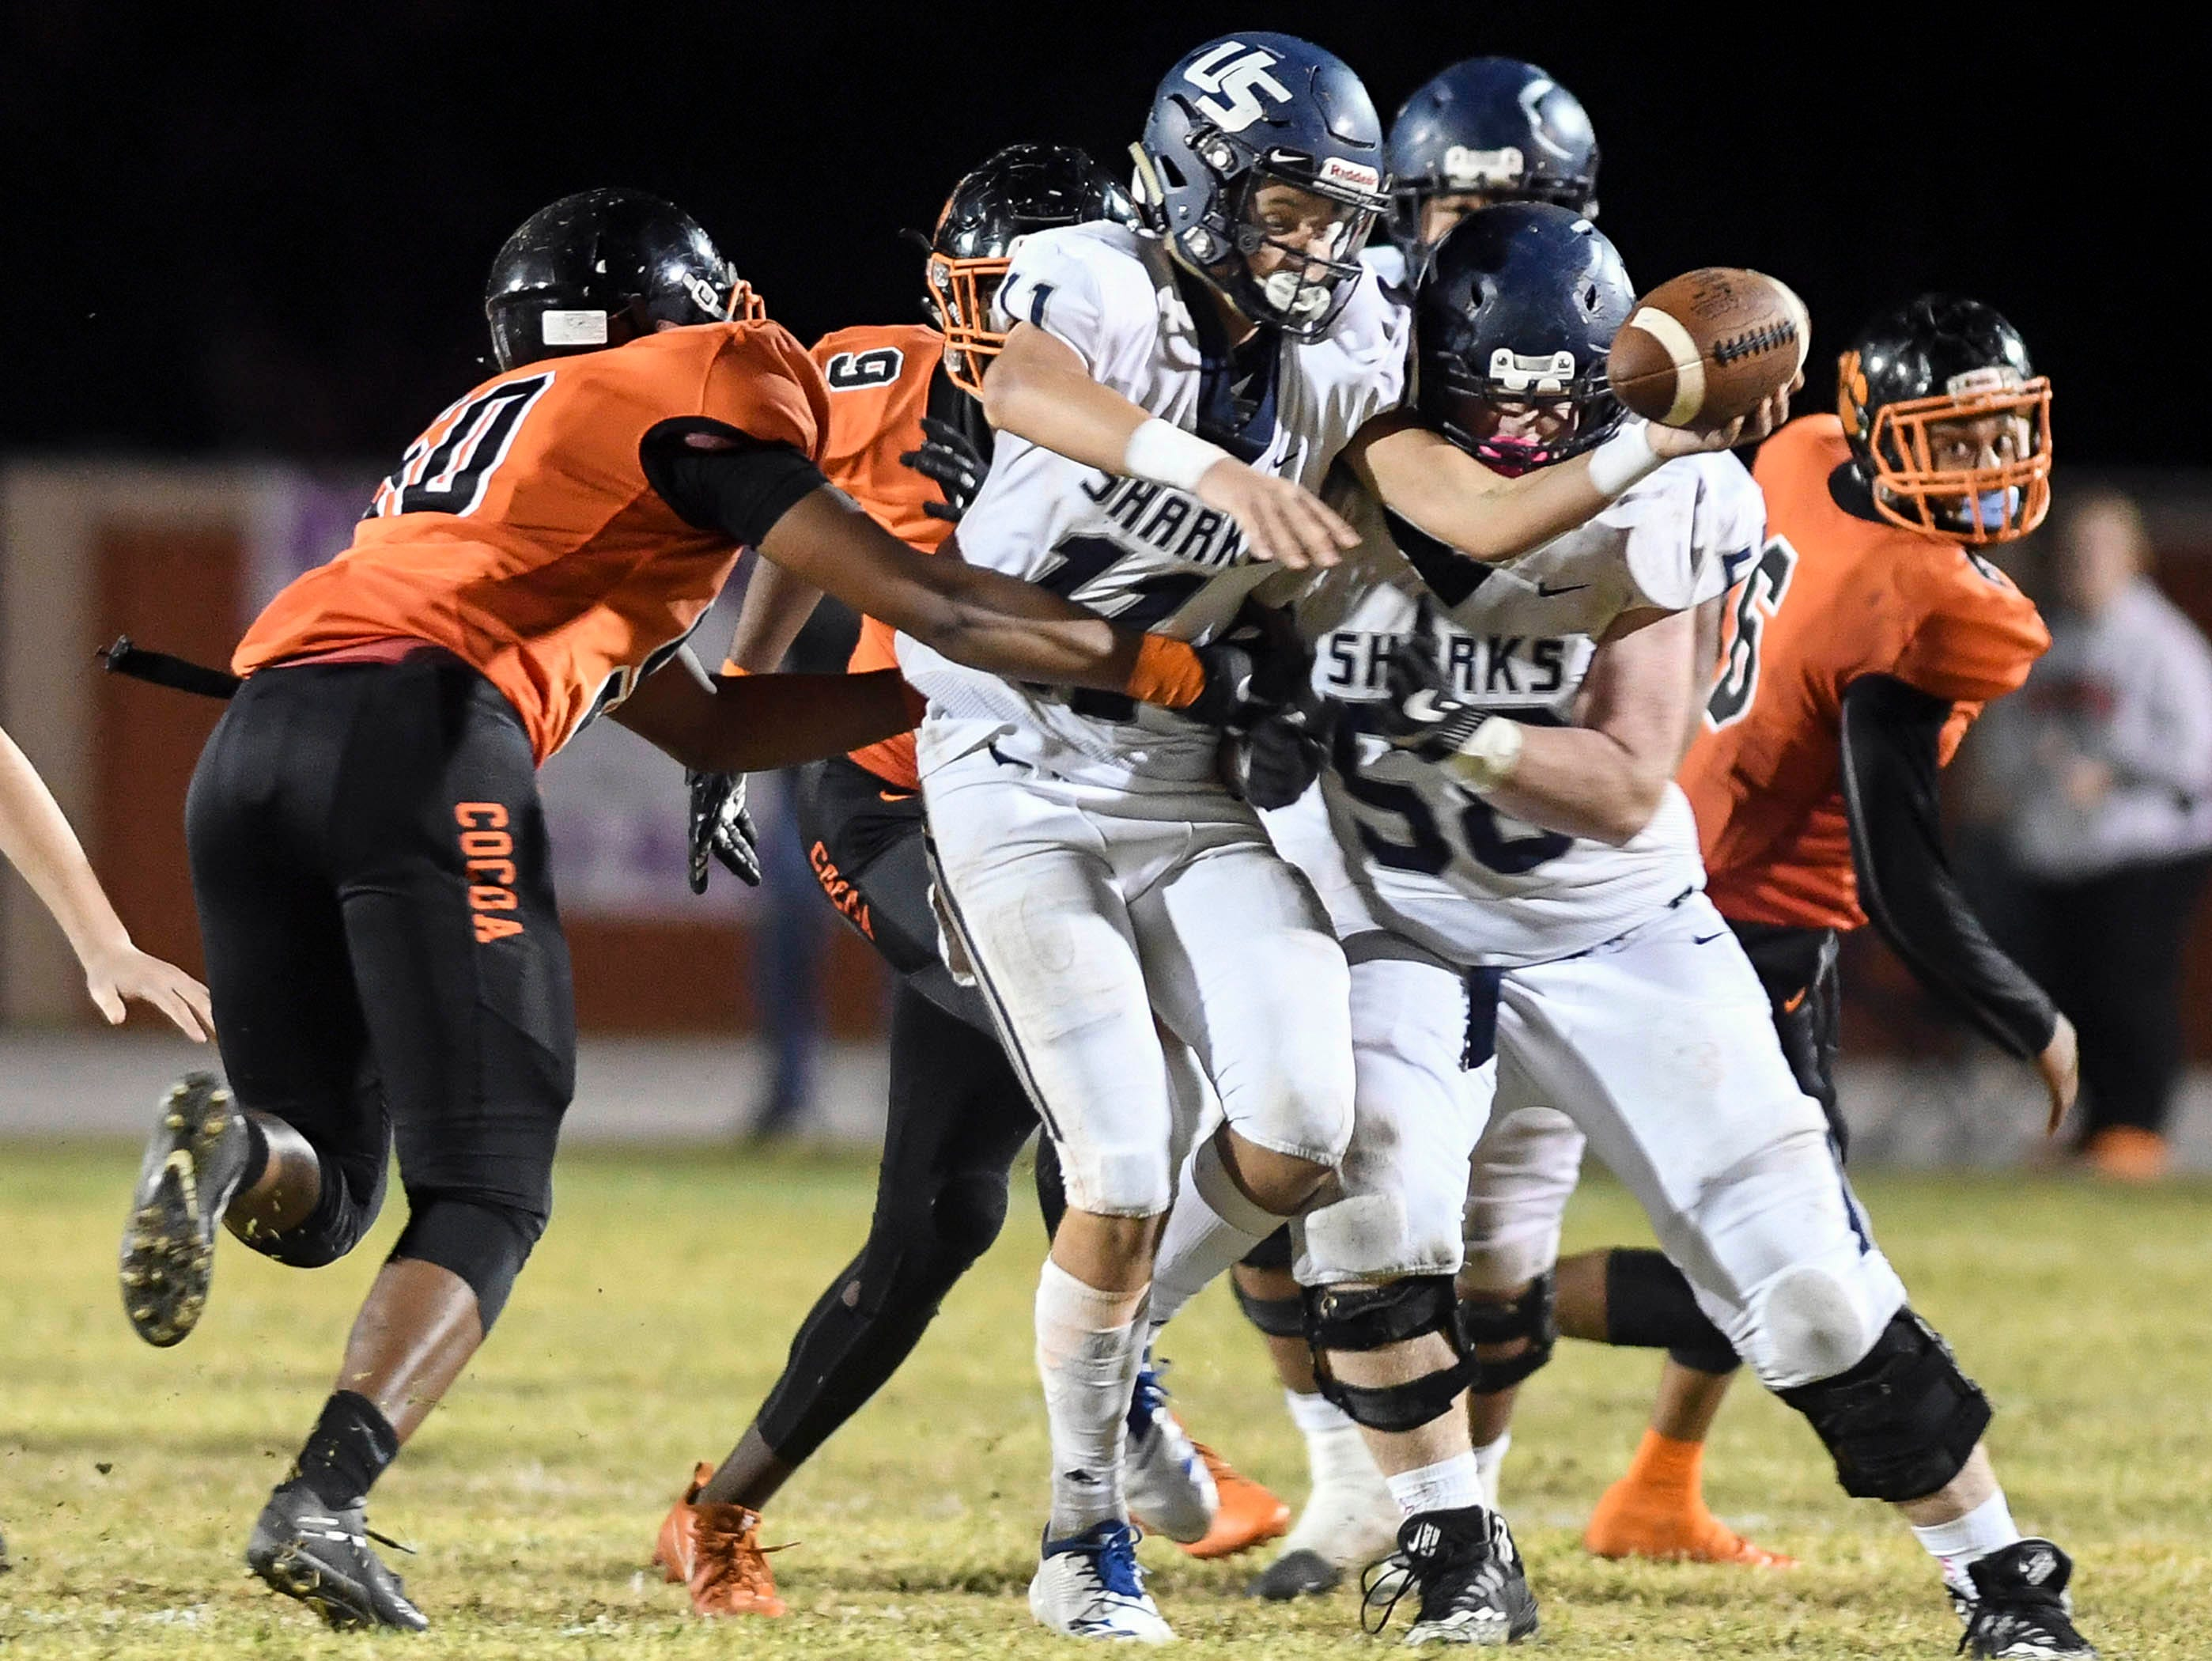 Cocoa players bring down University QB Nick Vattiato during Friday's Class 4A state semifinal.